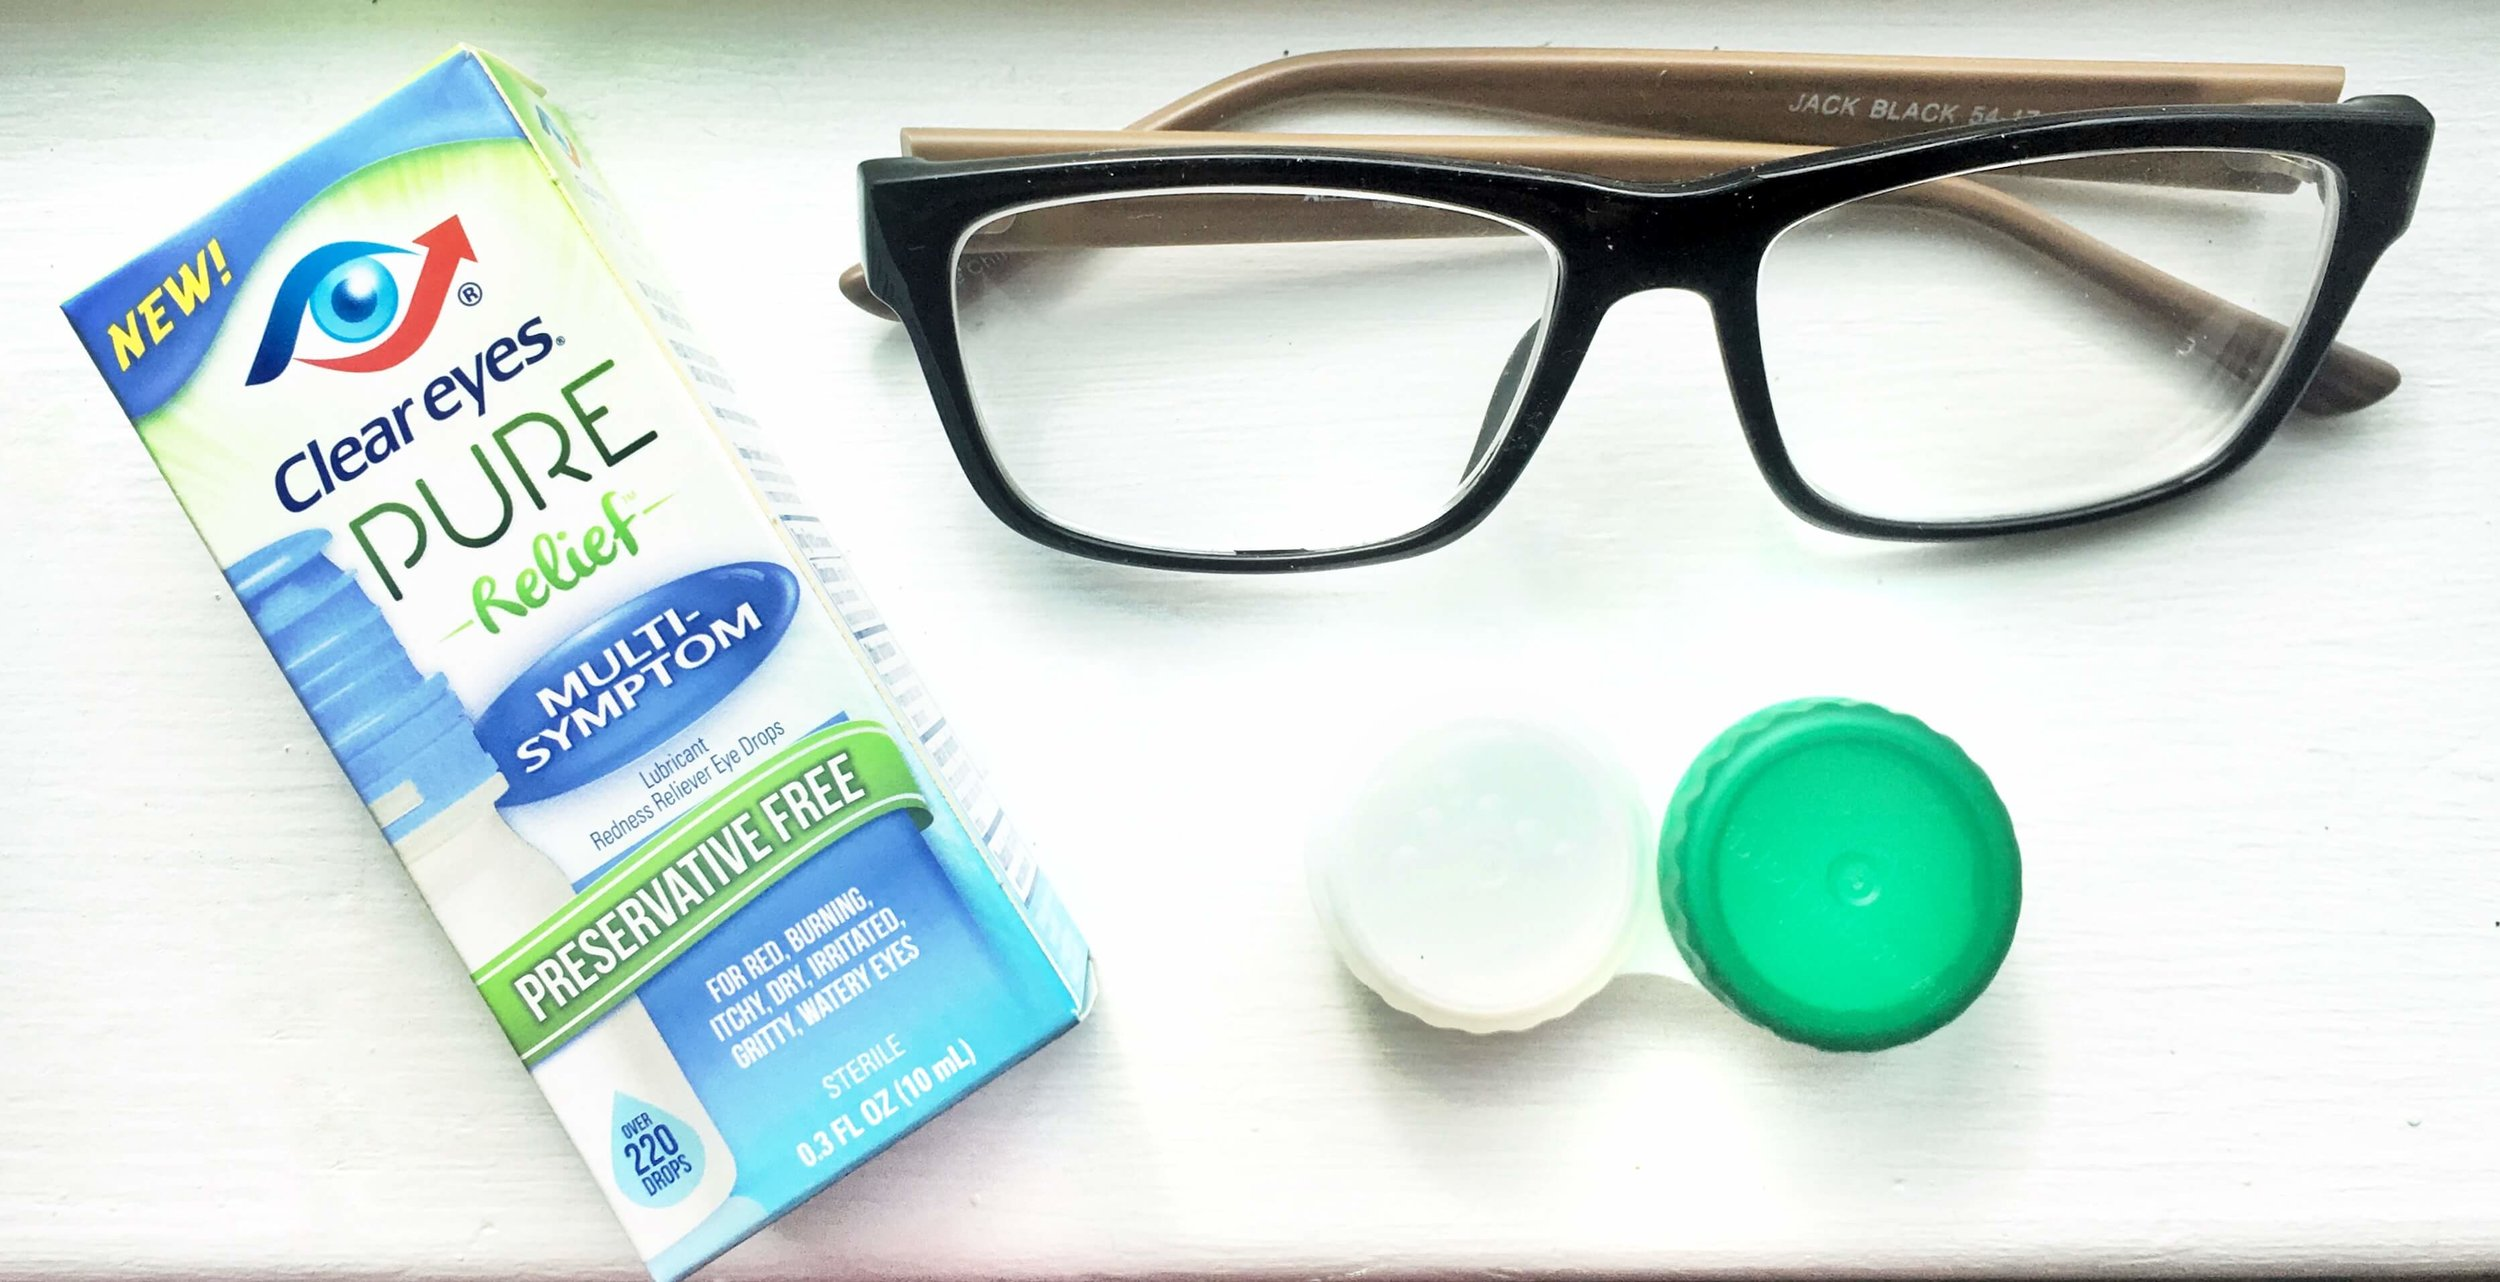 glasses-contacts-clear-eyes-drops-travel-ochristine